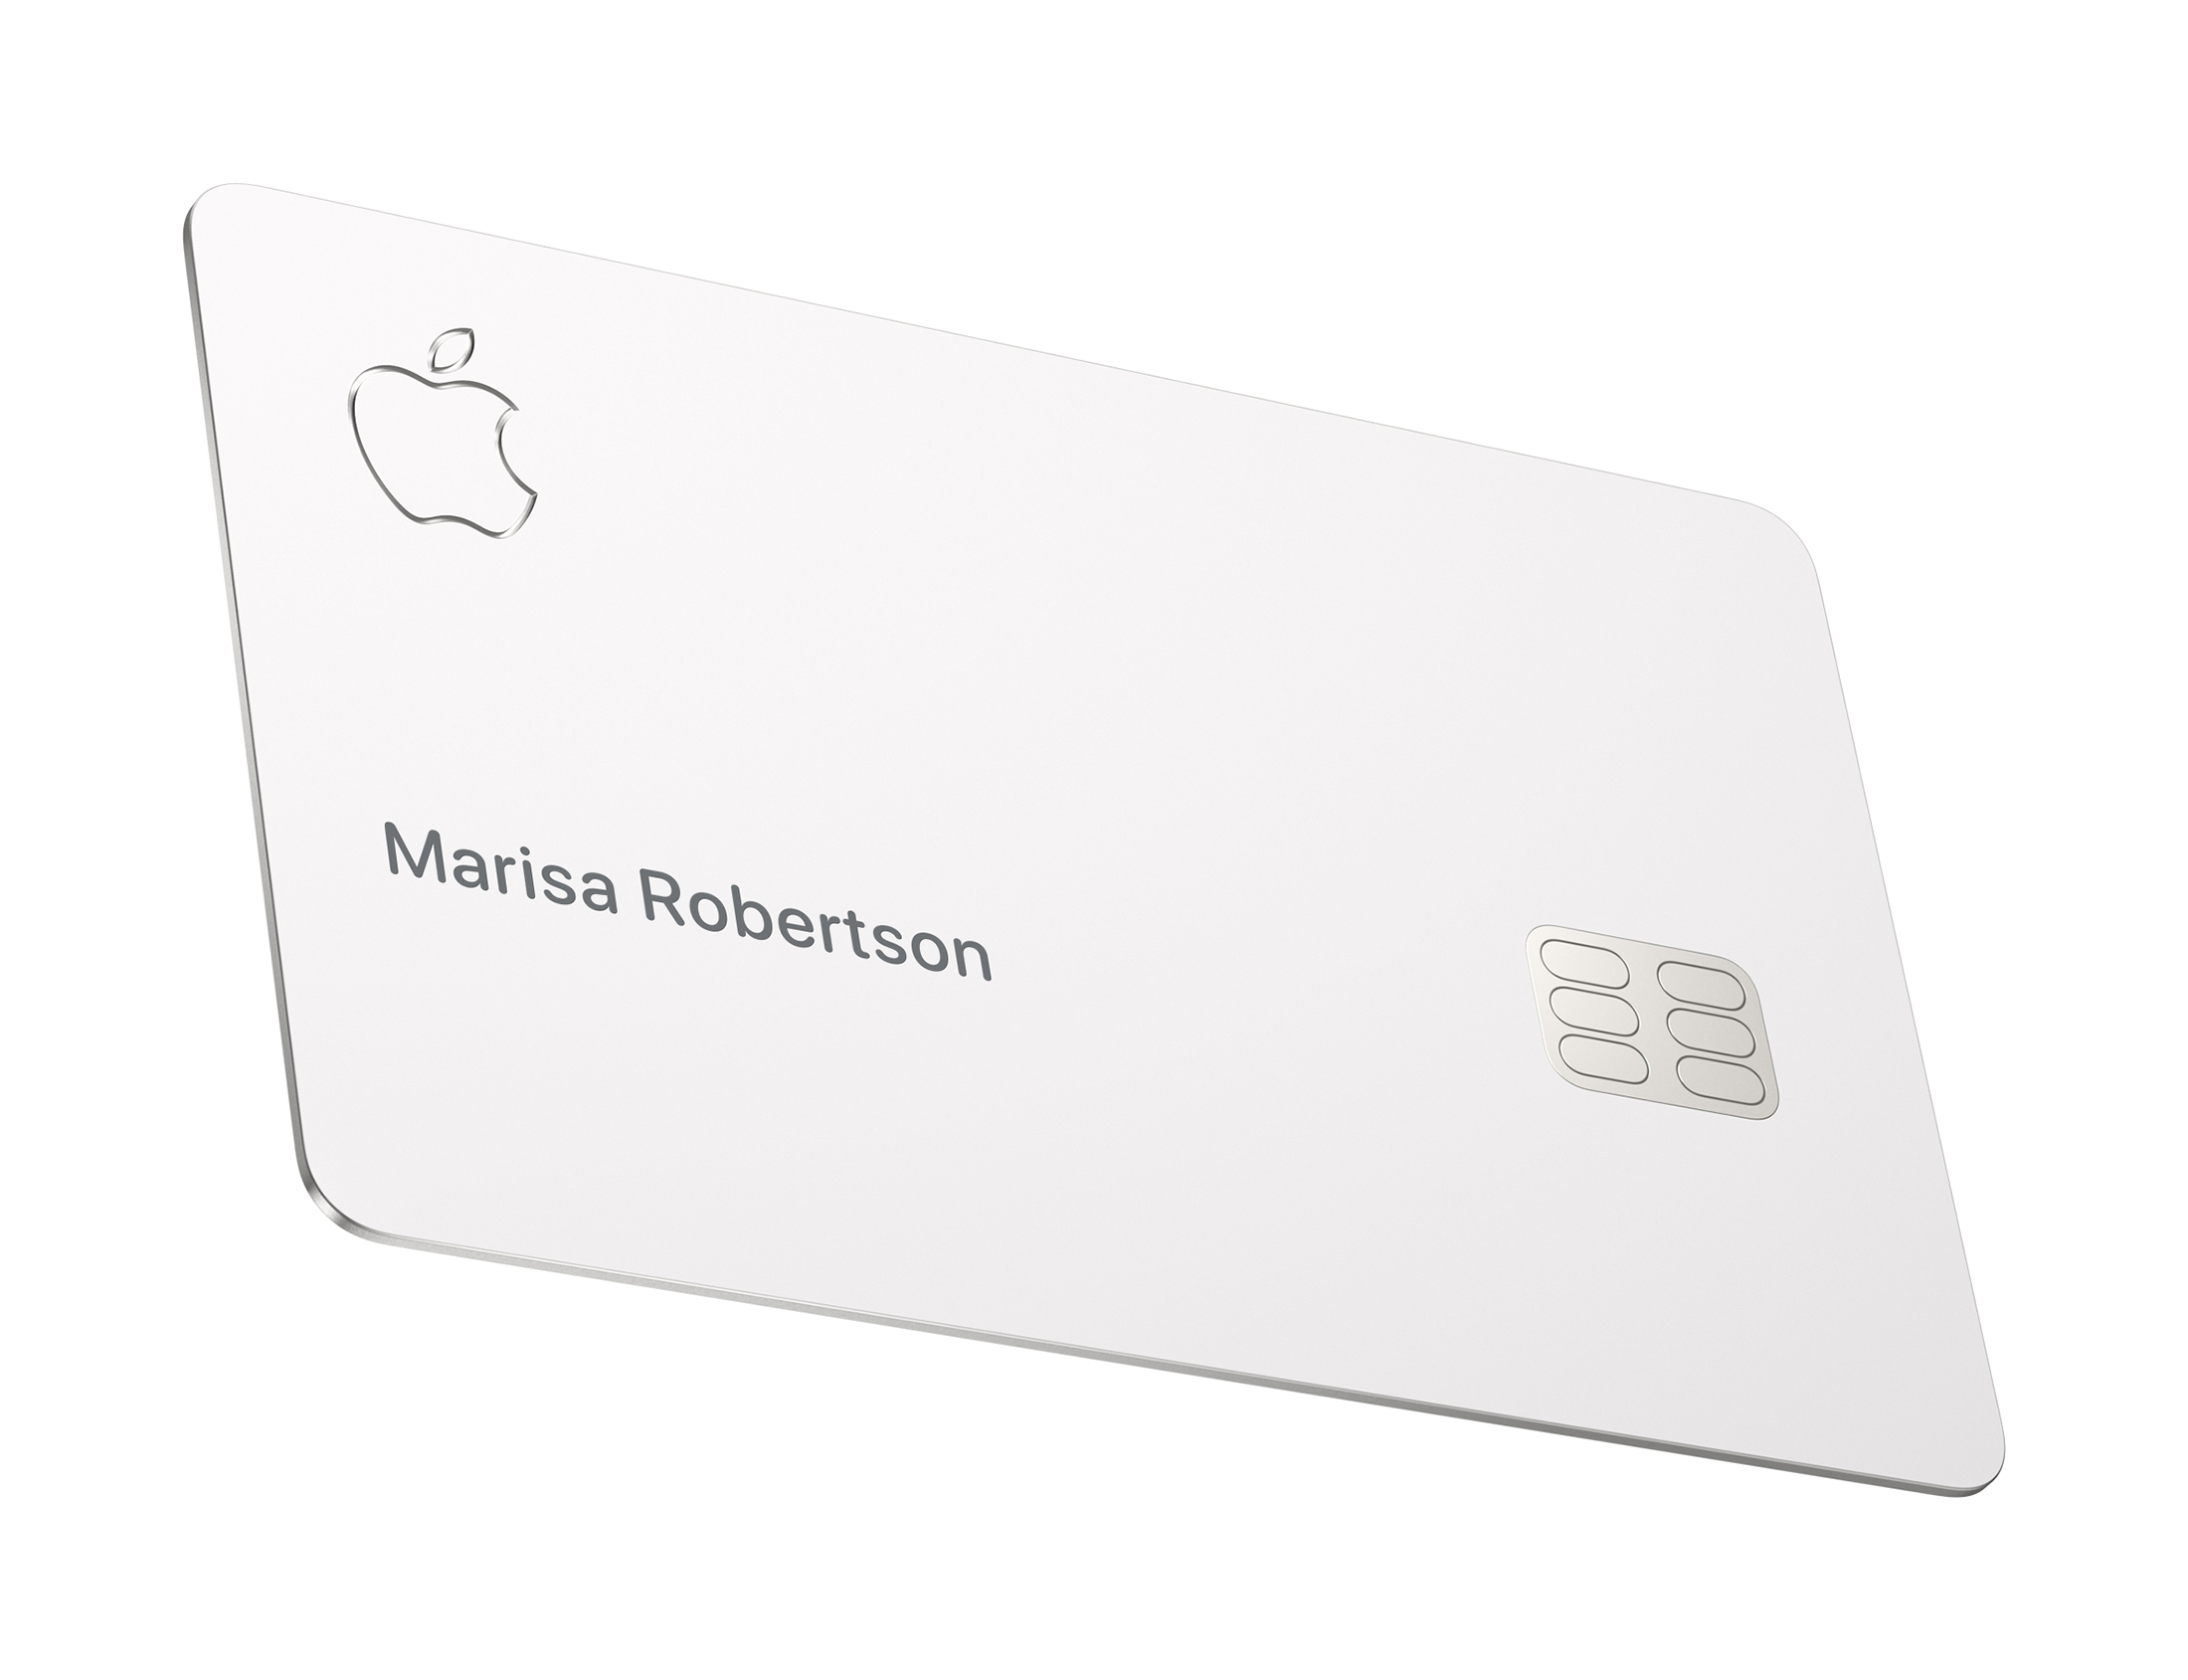 Retailers Pay the Fees for Your Apple Card - Bloomberg